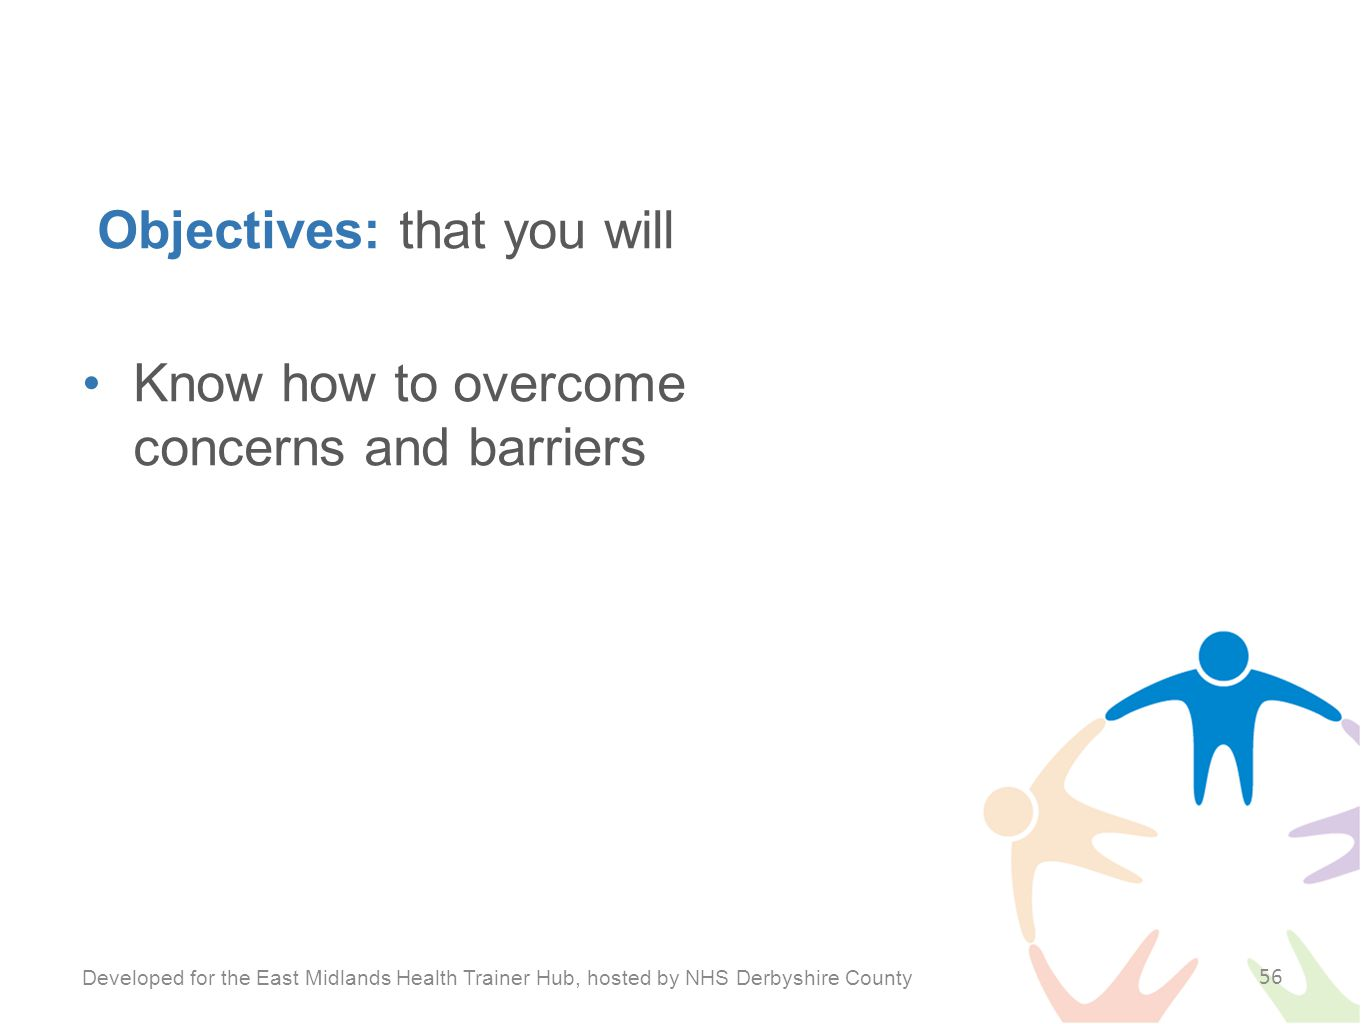 Objectives: that you will Know how to overcome concerns and barriers Developed for the East Midlands Health Trainer Hub, hosted by NHS Derbyshire County 56